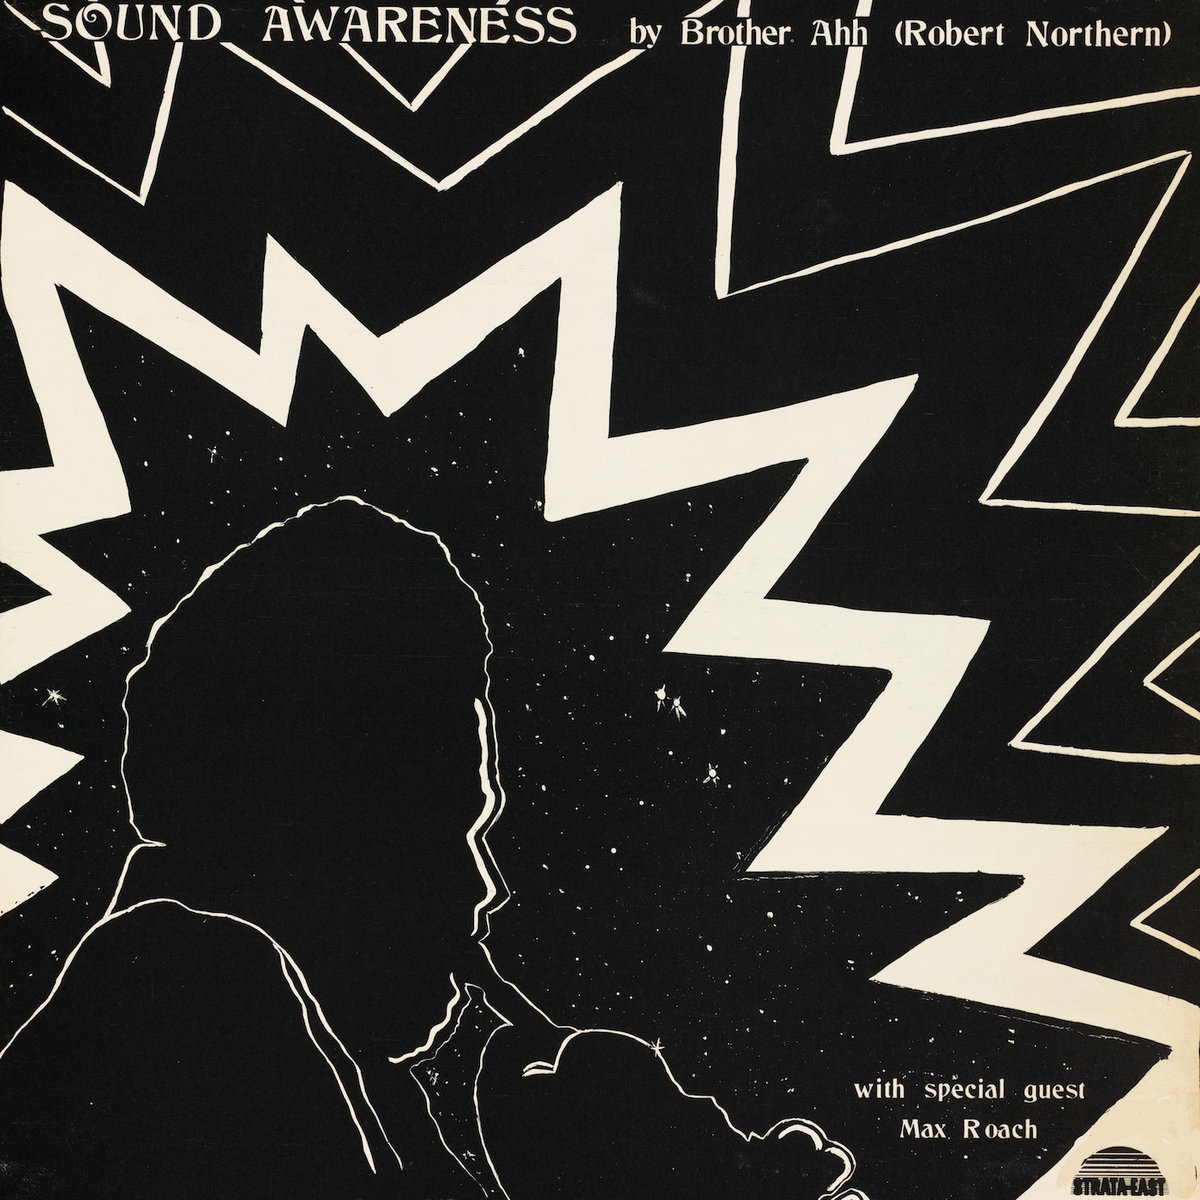 Sound Awareness  by Brother Ahh (R. Northern) | Strata East Records, 1972